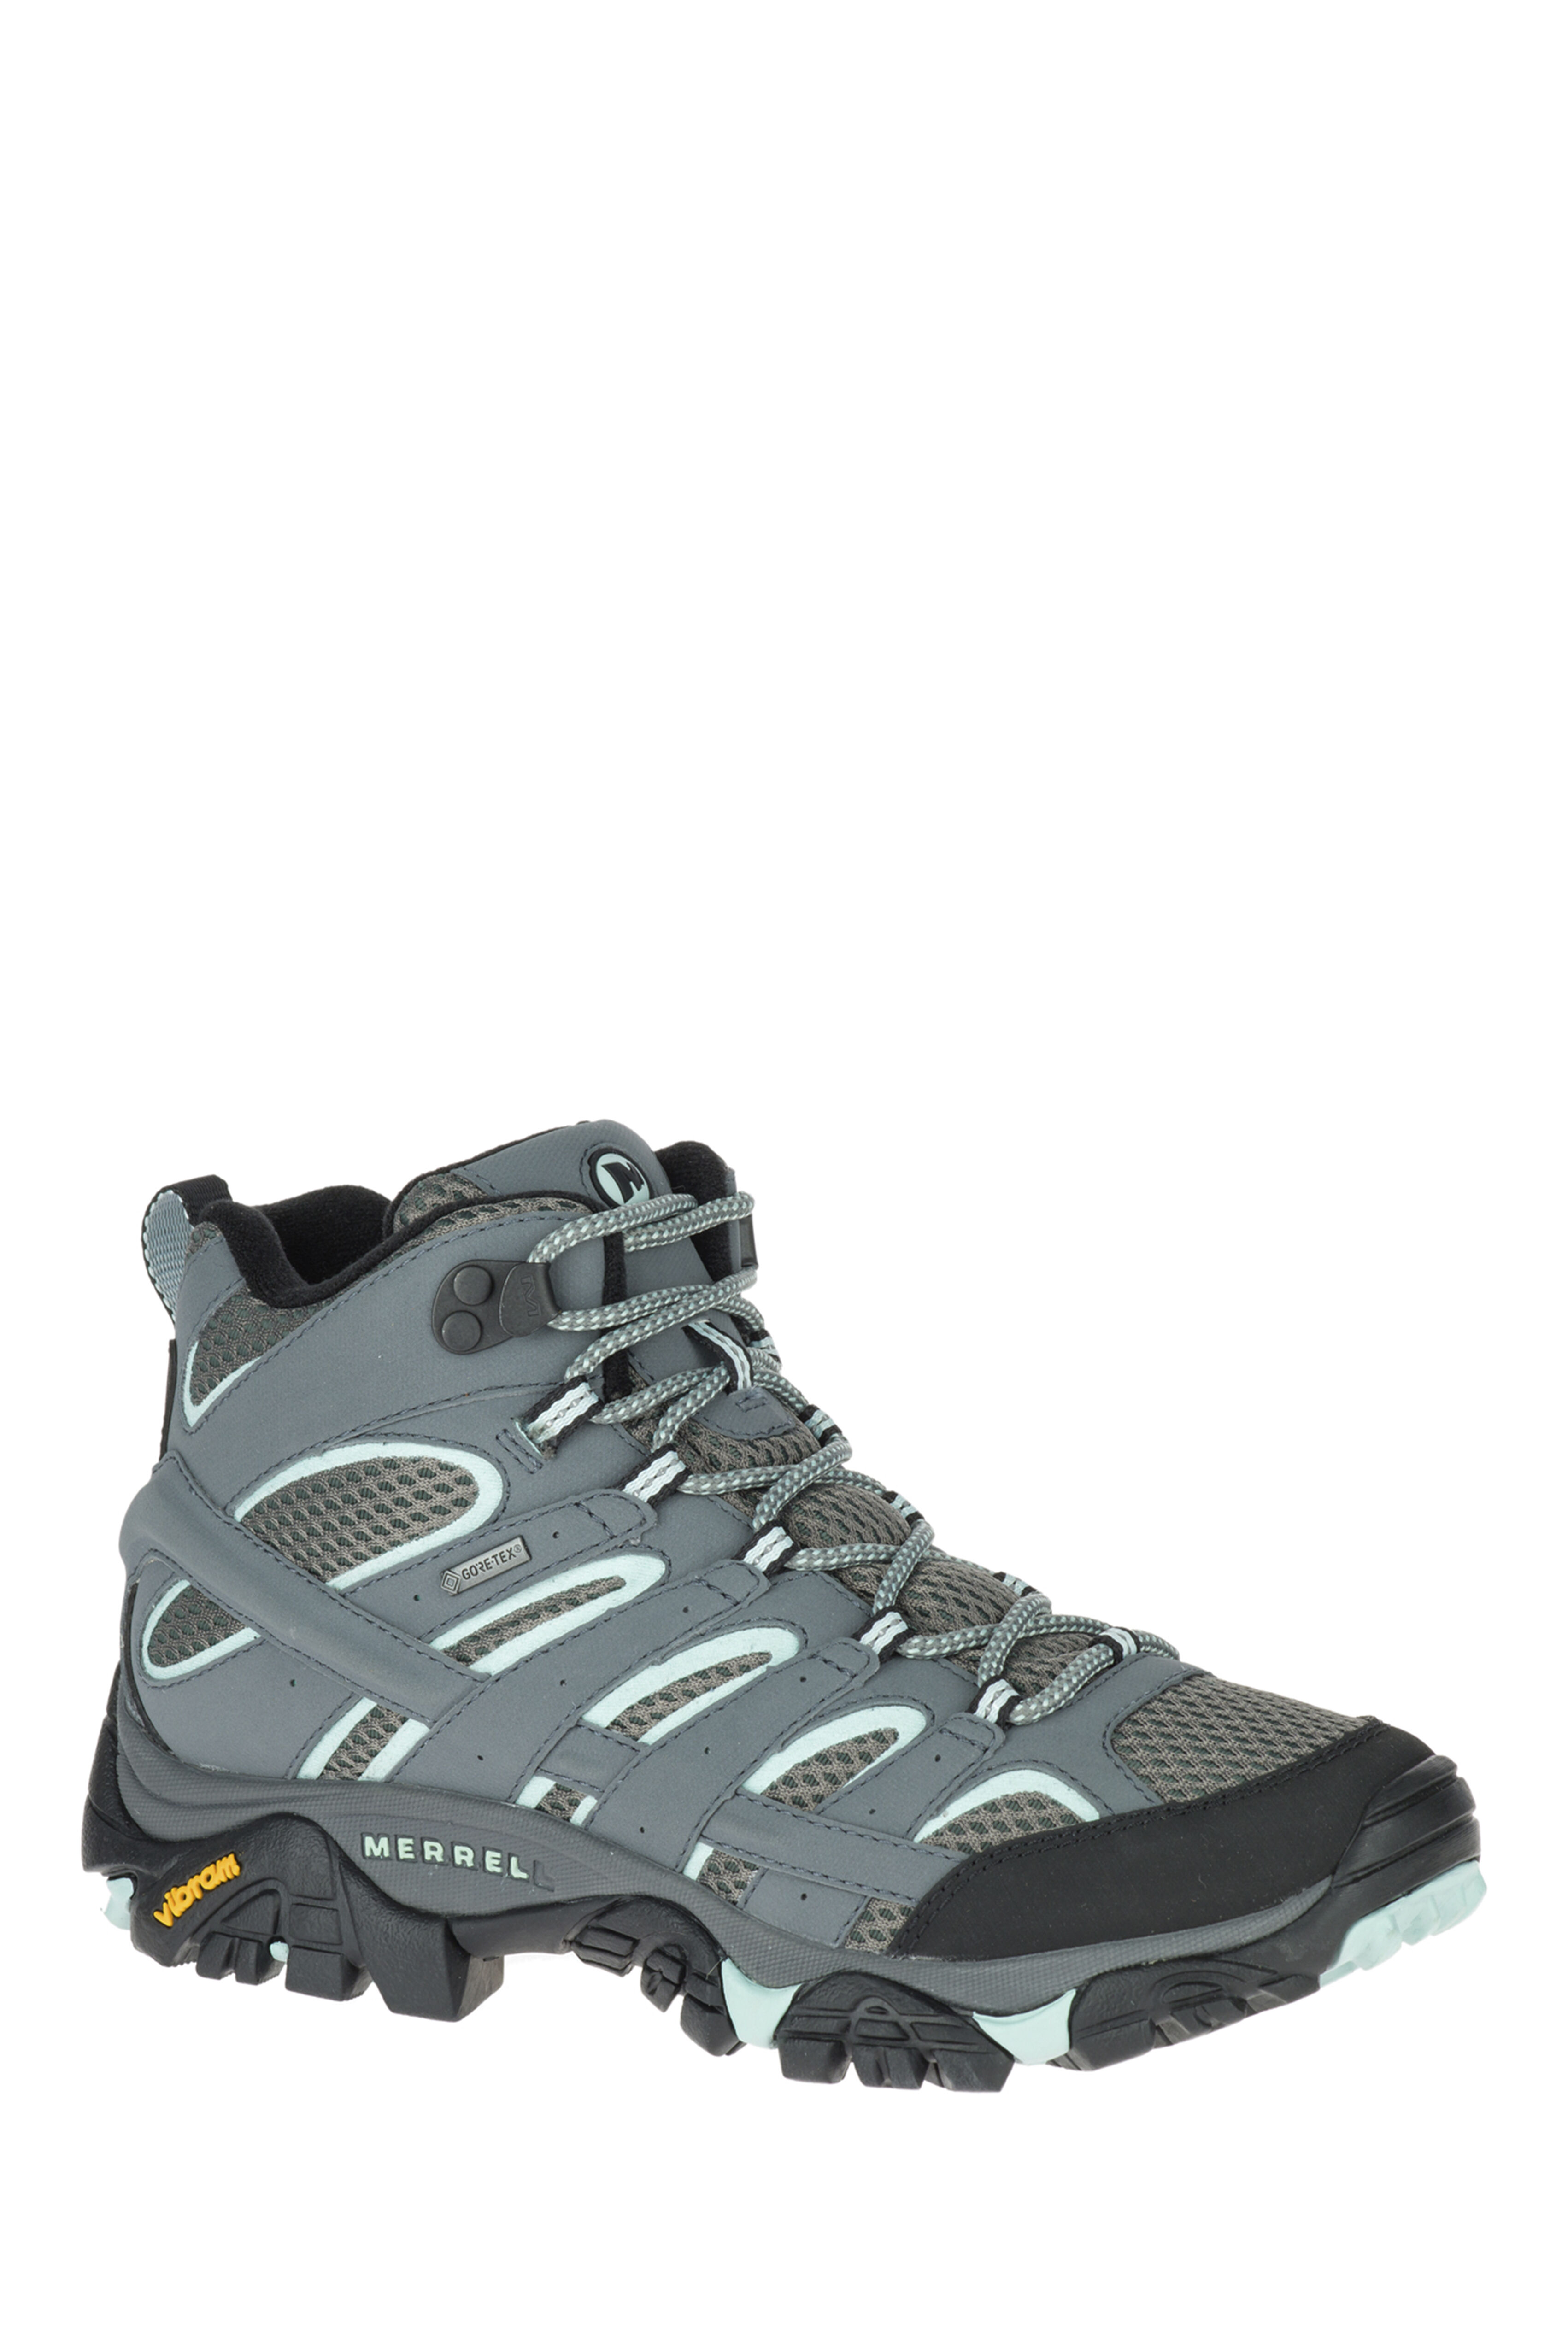 merrell moab hikers kit